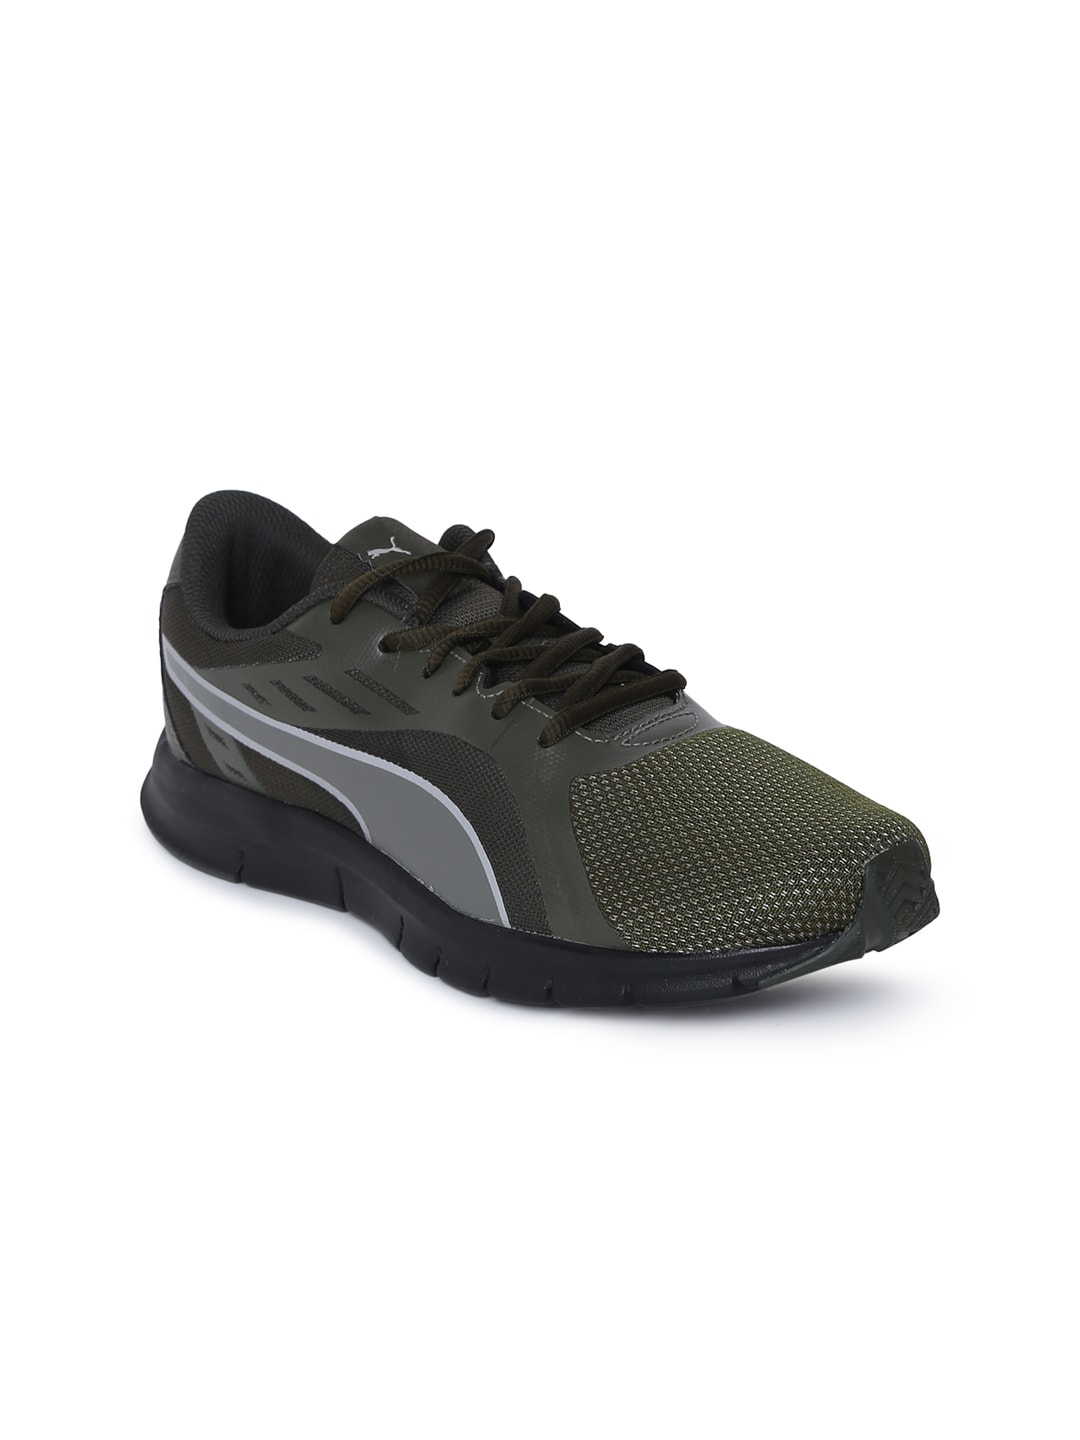 f19d102e1a8809 c60be977-a75b-4a7c-bb7e-5b2bbf7ea05d1535022140844-Puma-Women-Green-Felix-Running-Shoes-6741535022140157- 1.jpg